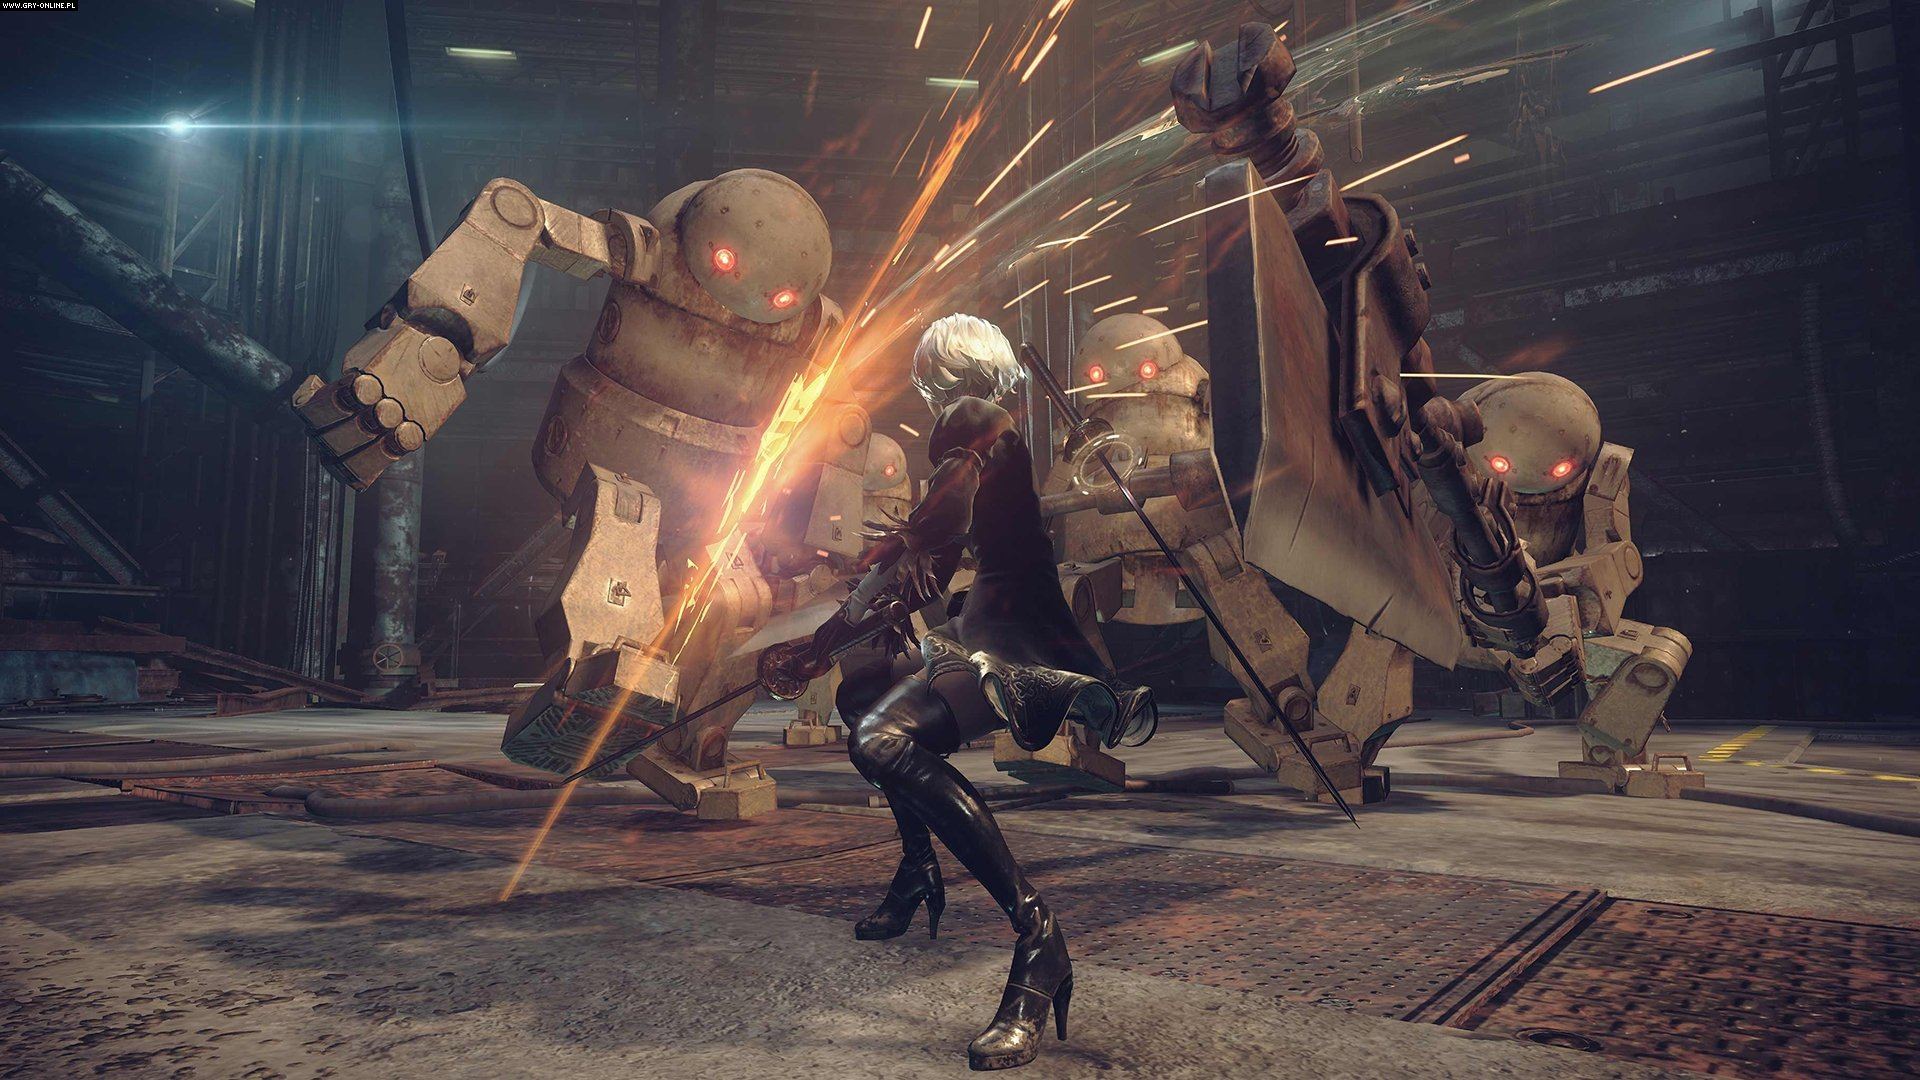 Nier: Automata PC, PS4 Games Image 8/64, PlatinumGames, Square-Enix / Eidos